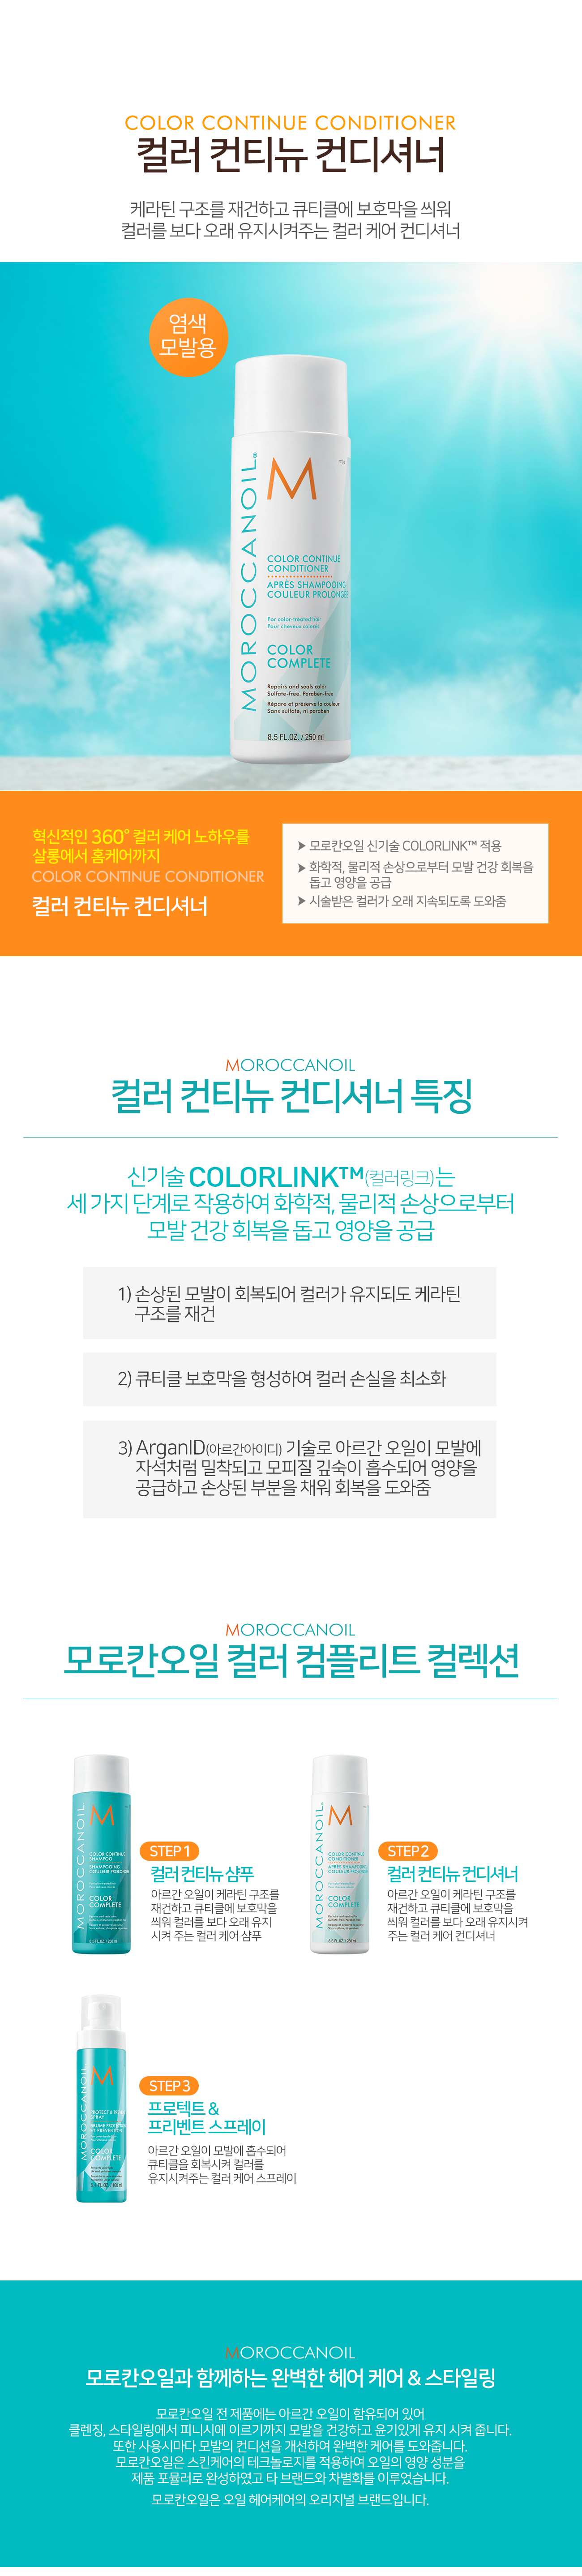 moroccanoil_colorcontinue_conditioner.jpg